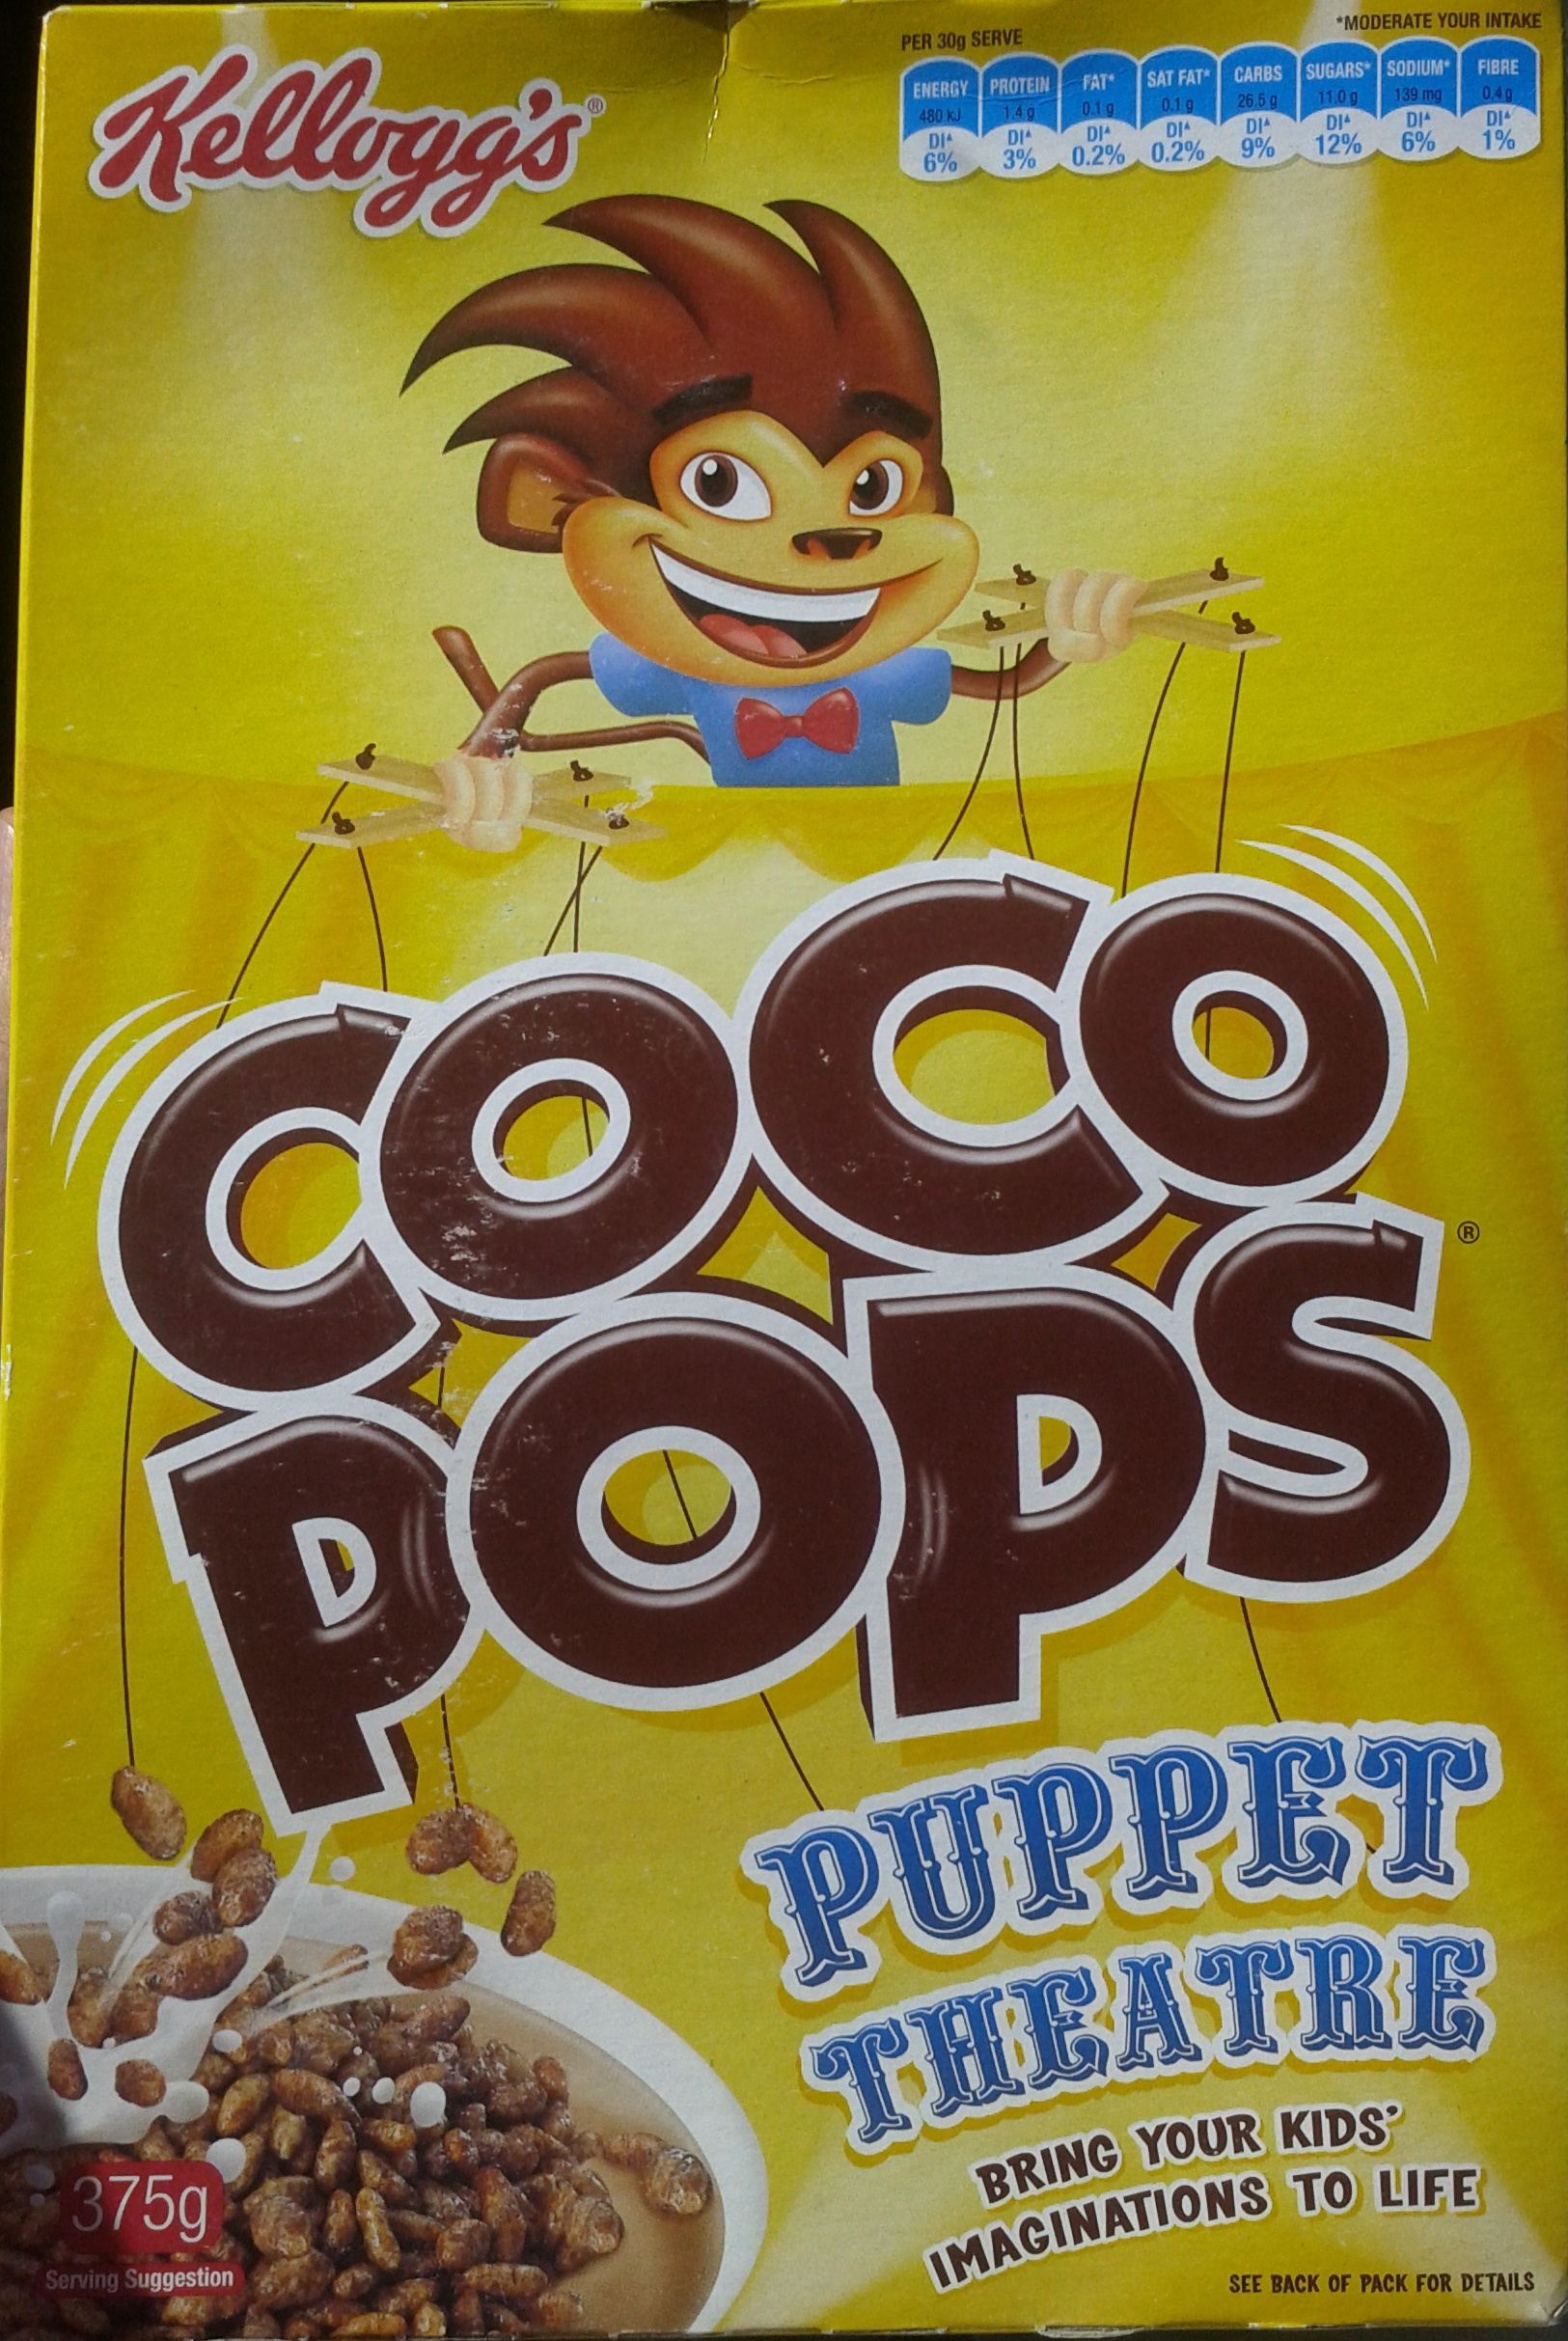 Coco Pops - Kellogg's - 375G - Product - fr